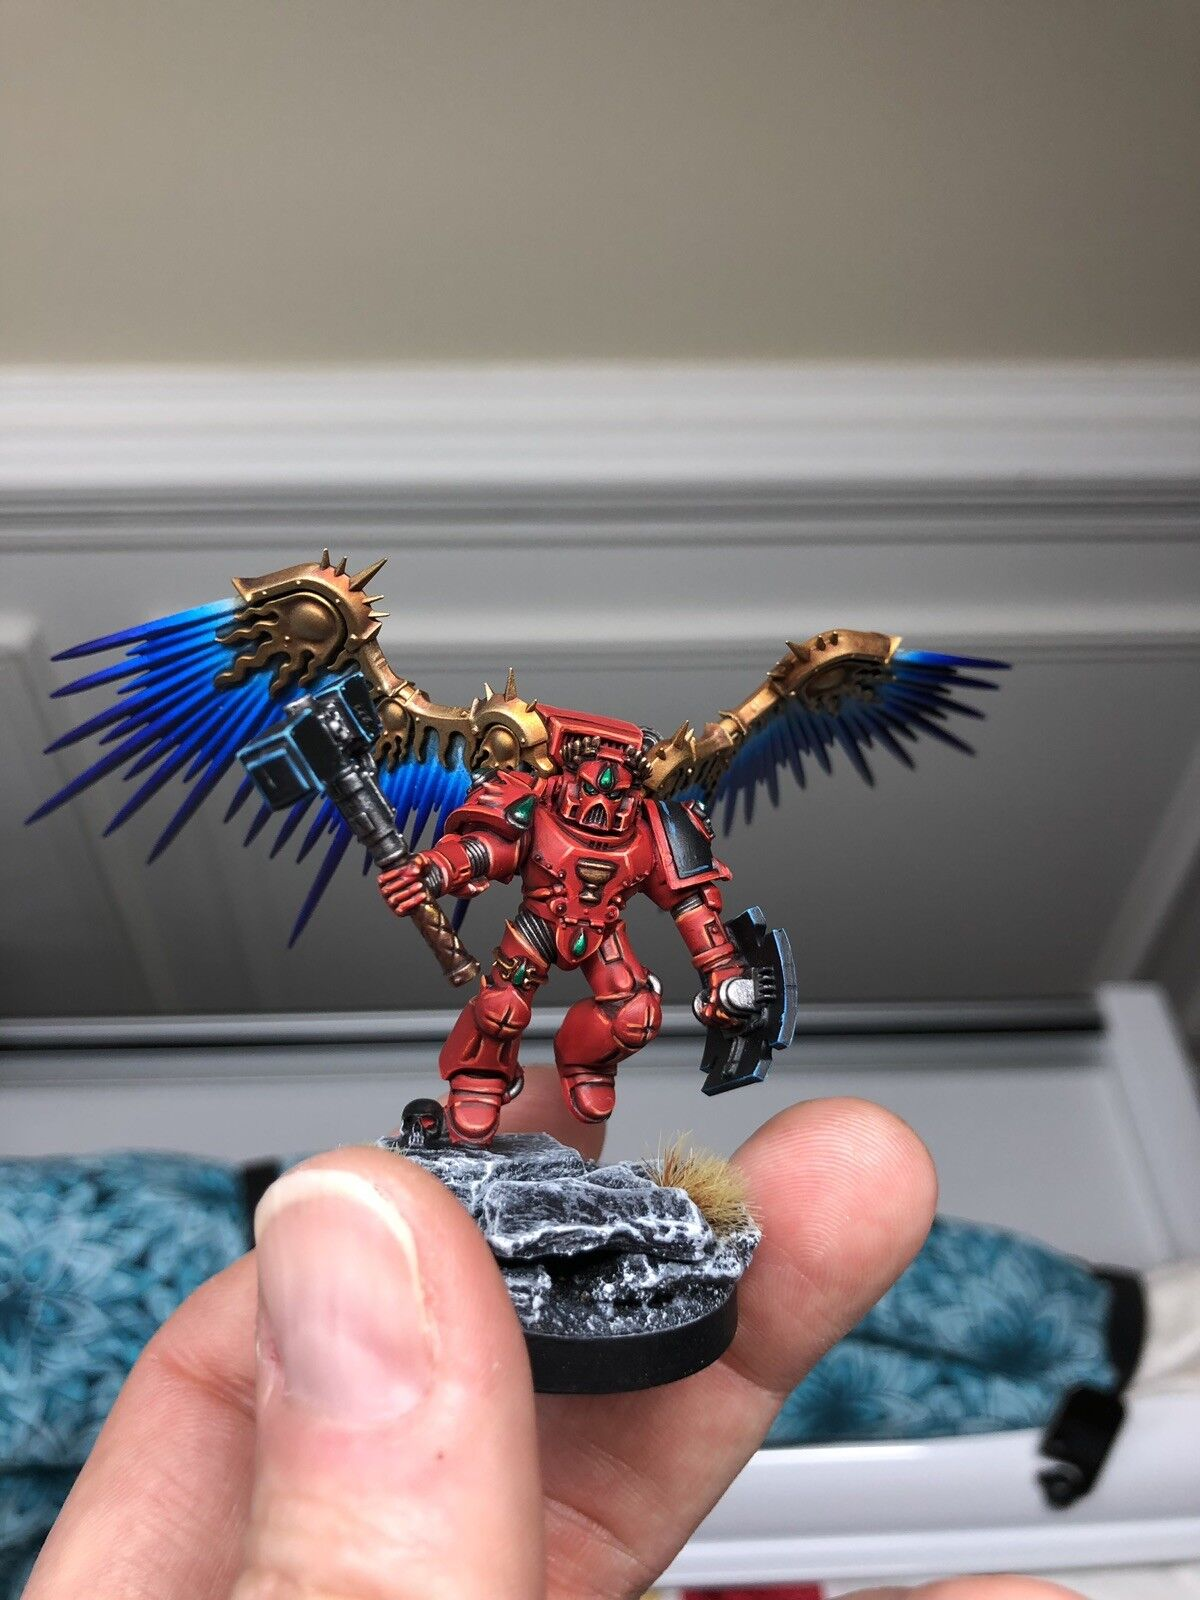 Warhammer 40K Blood Angels Captain Slam Slamguinius Painted Commission  lavoro.  Sito ufficiale